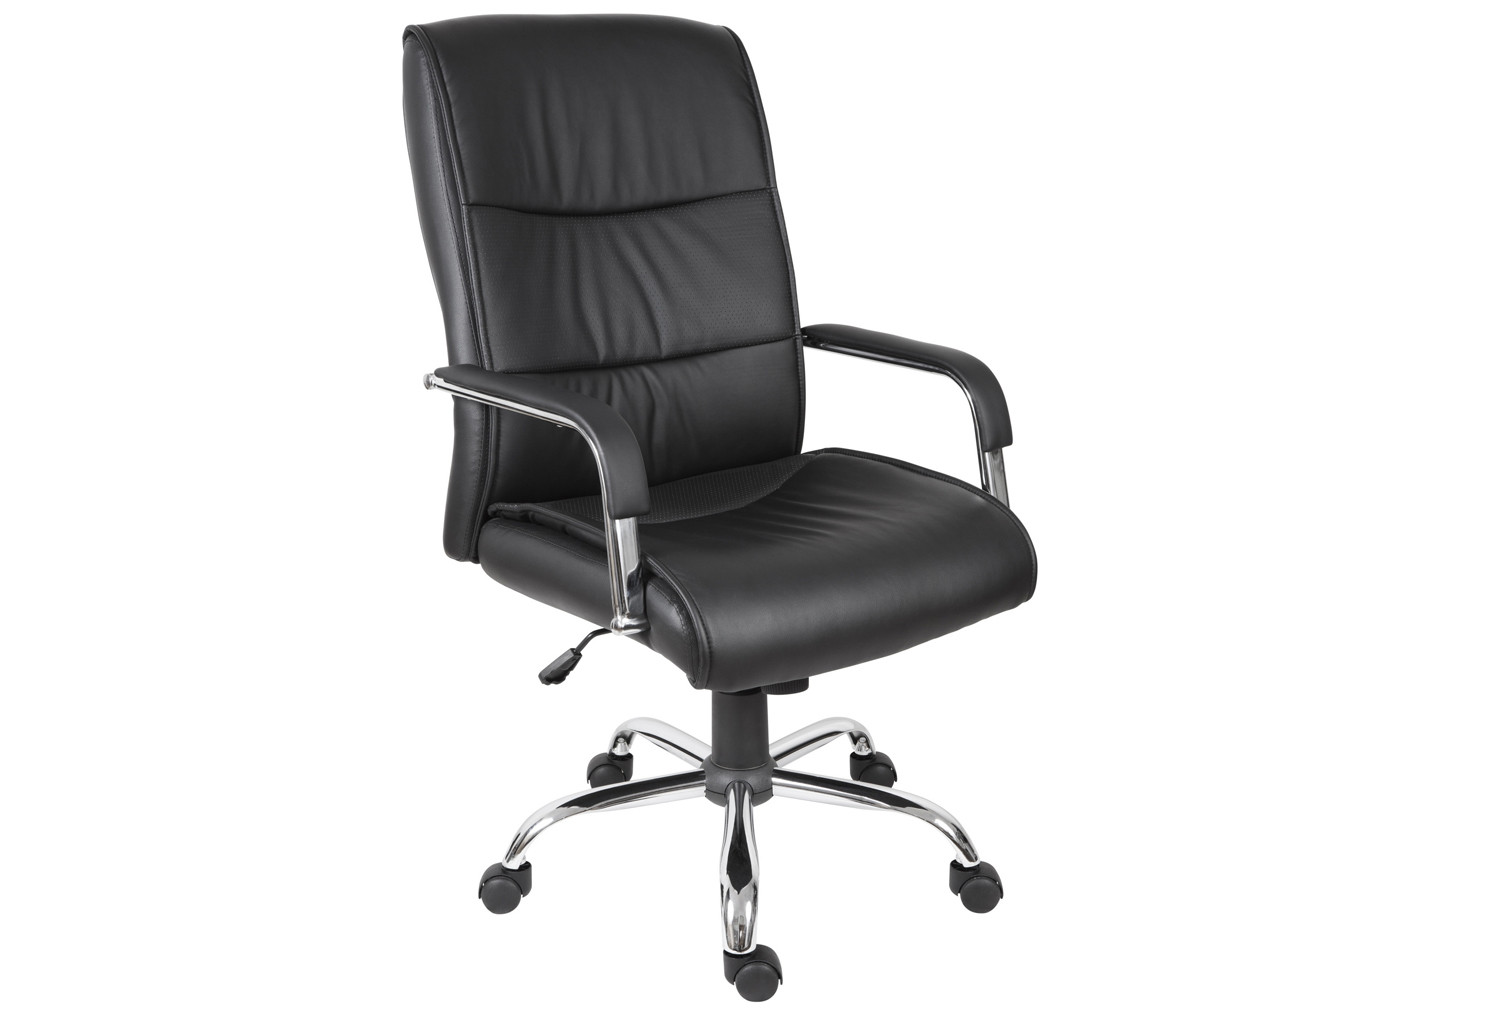 Next-Day Kirkby Executive Leather Faced Chair (Black)